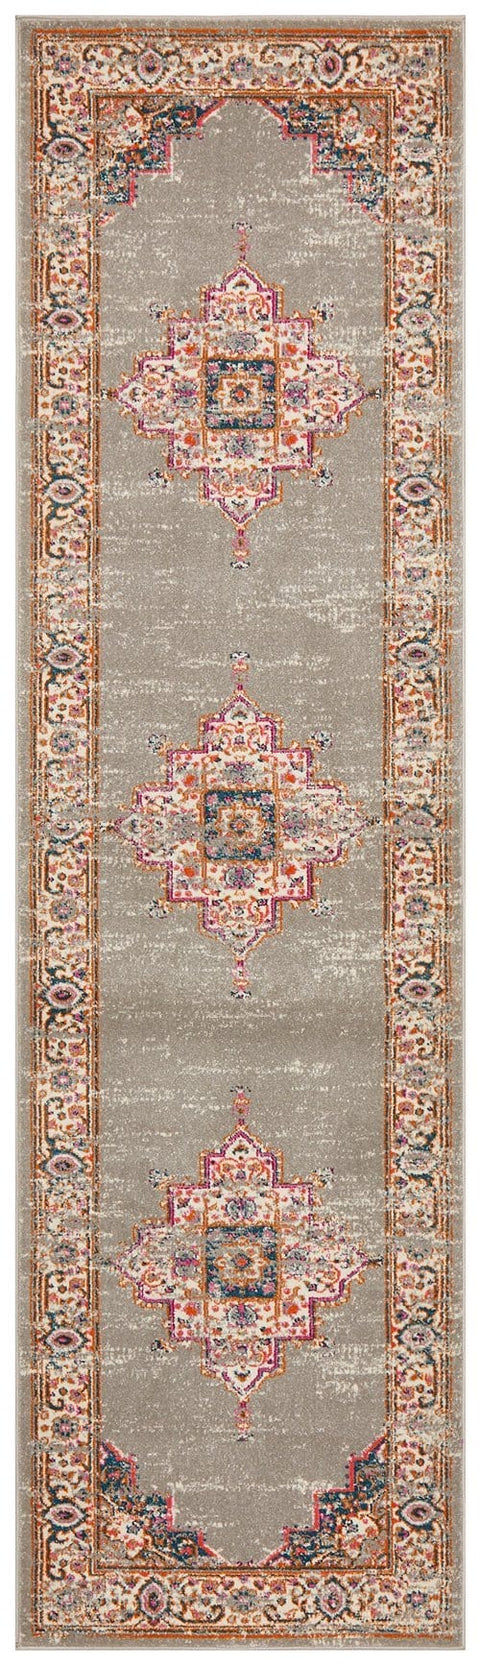 Arles Grey Traditional Medallion Runner Rug